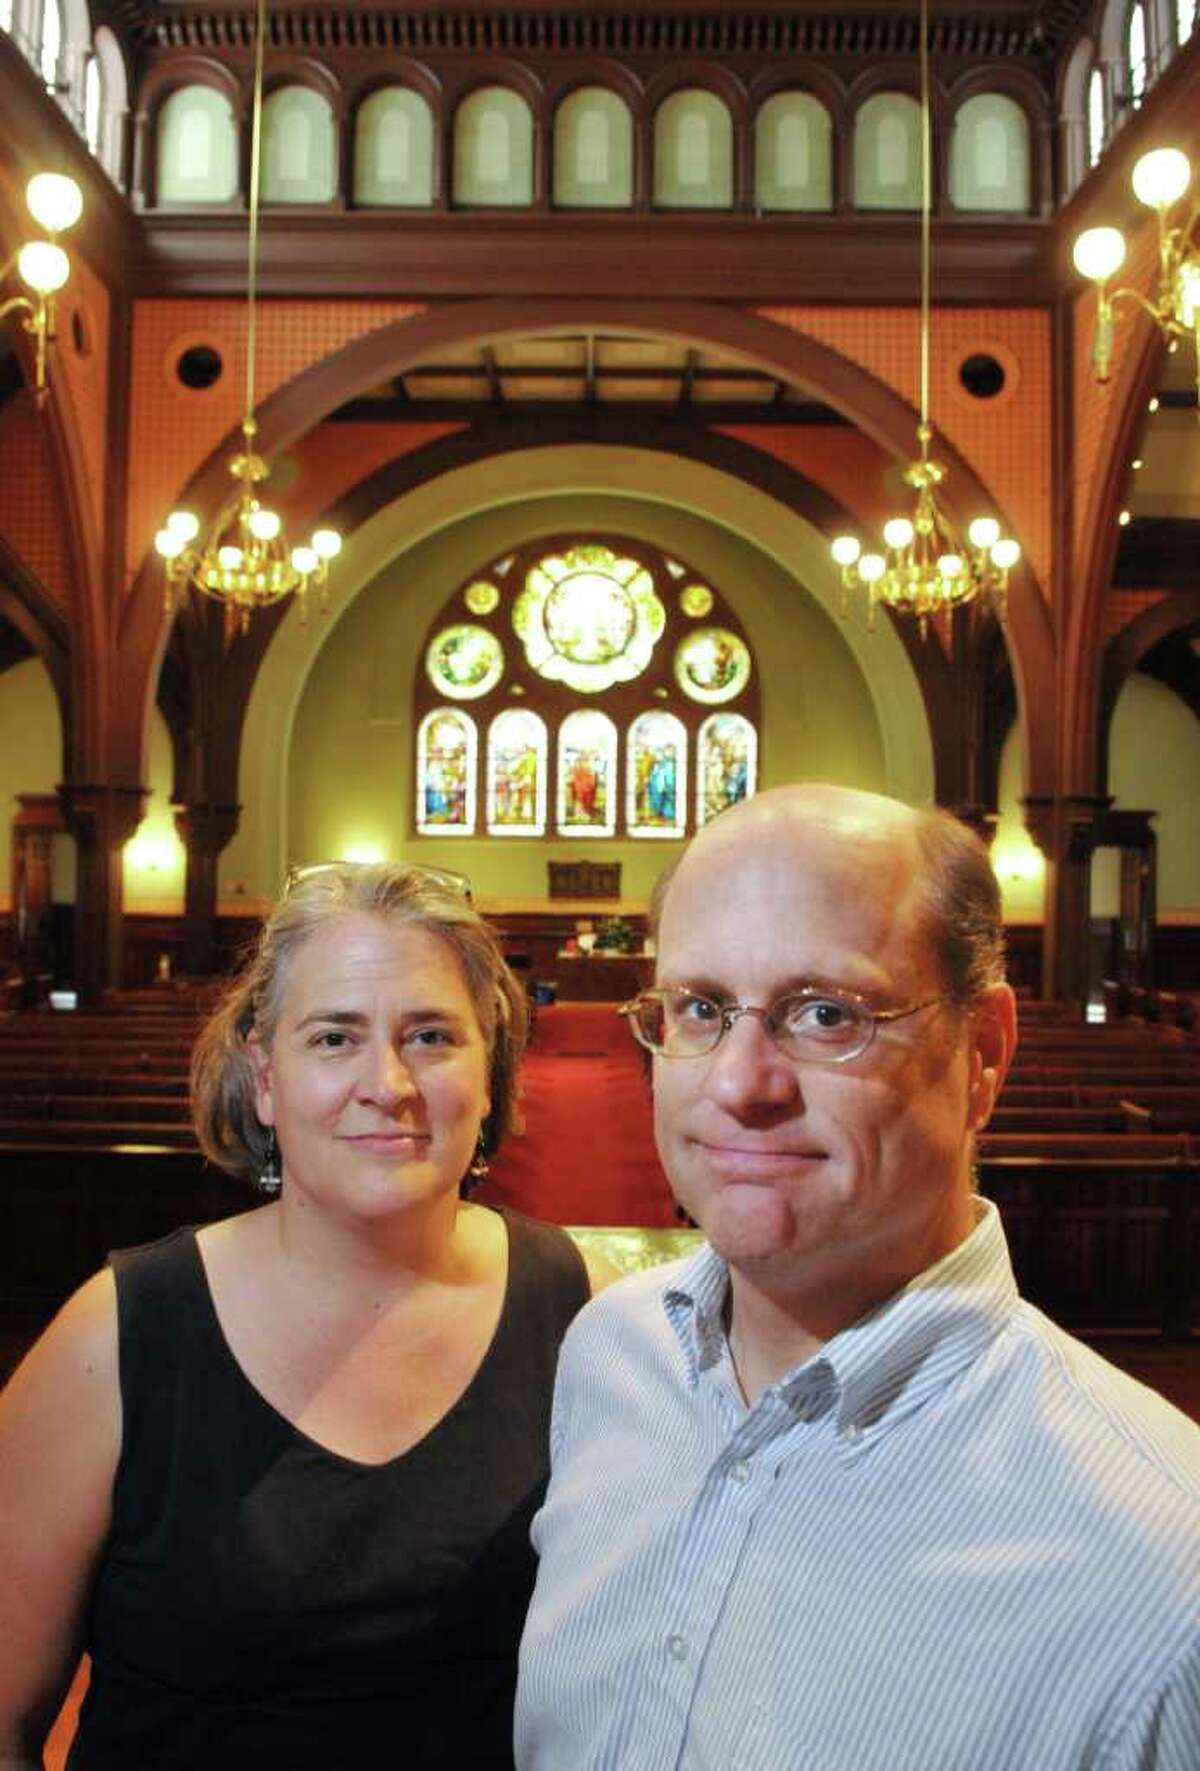 Reverends Miriam, left, and Glenn Leupold inside First Presbyterian Church in Albany Wednesday July 20, 2011. (John Carl D'Annibale / Times Union)